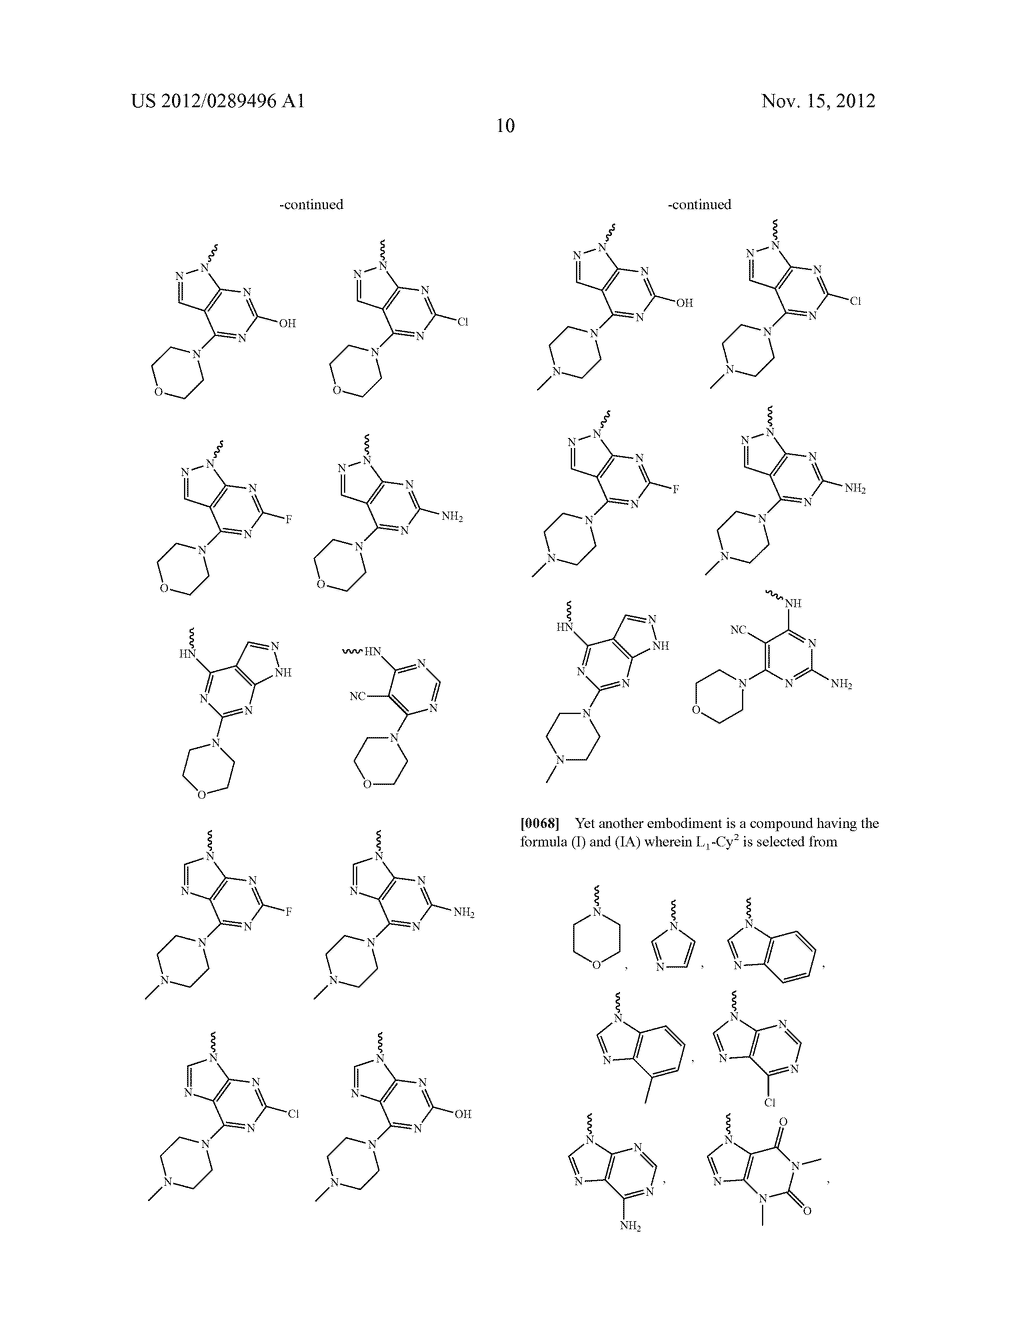 NOVEL COMPOUNDS AS MODULATORS OF PROTEIN KINASES - diagram, schematic, and image 11